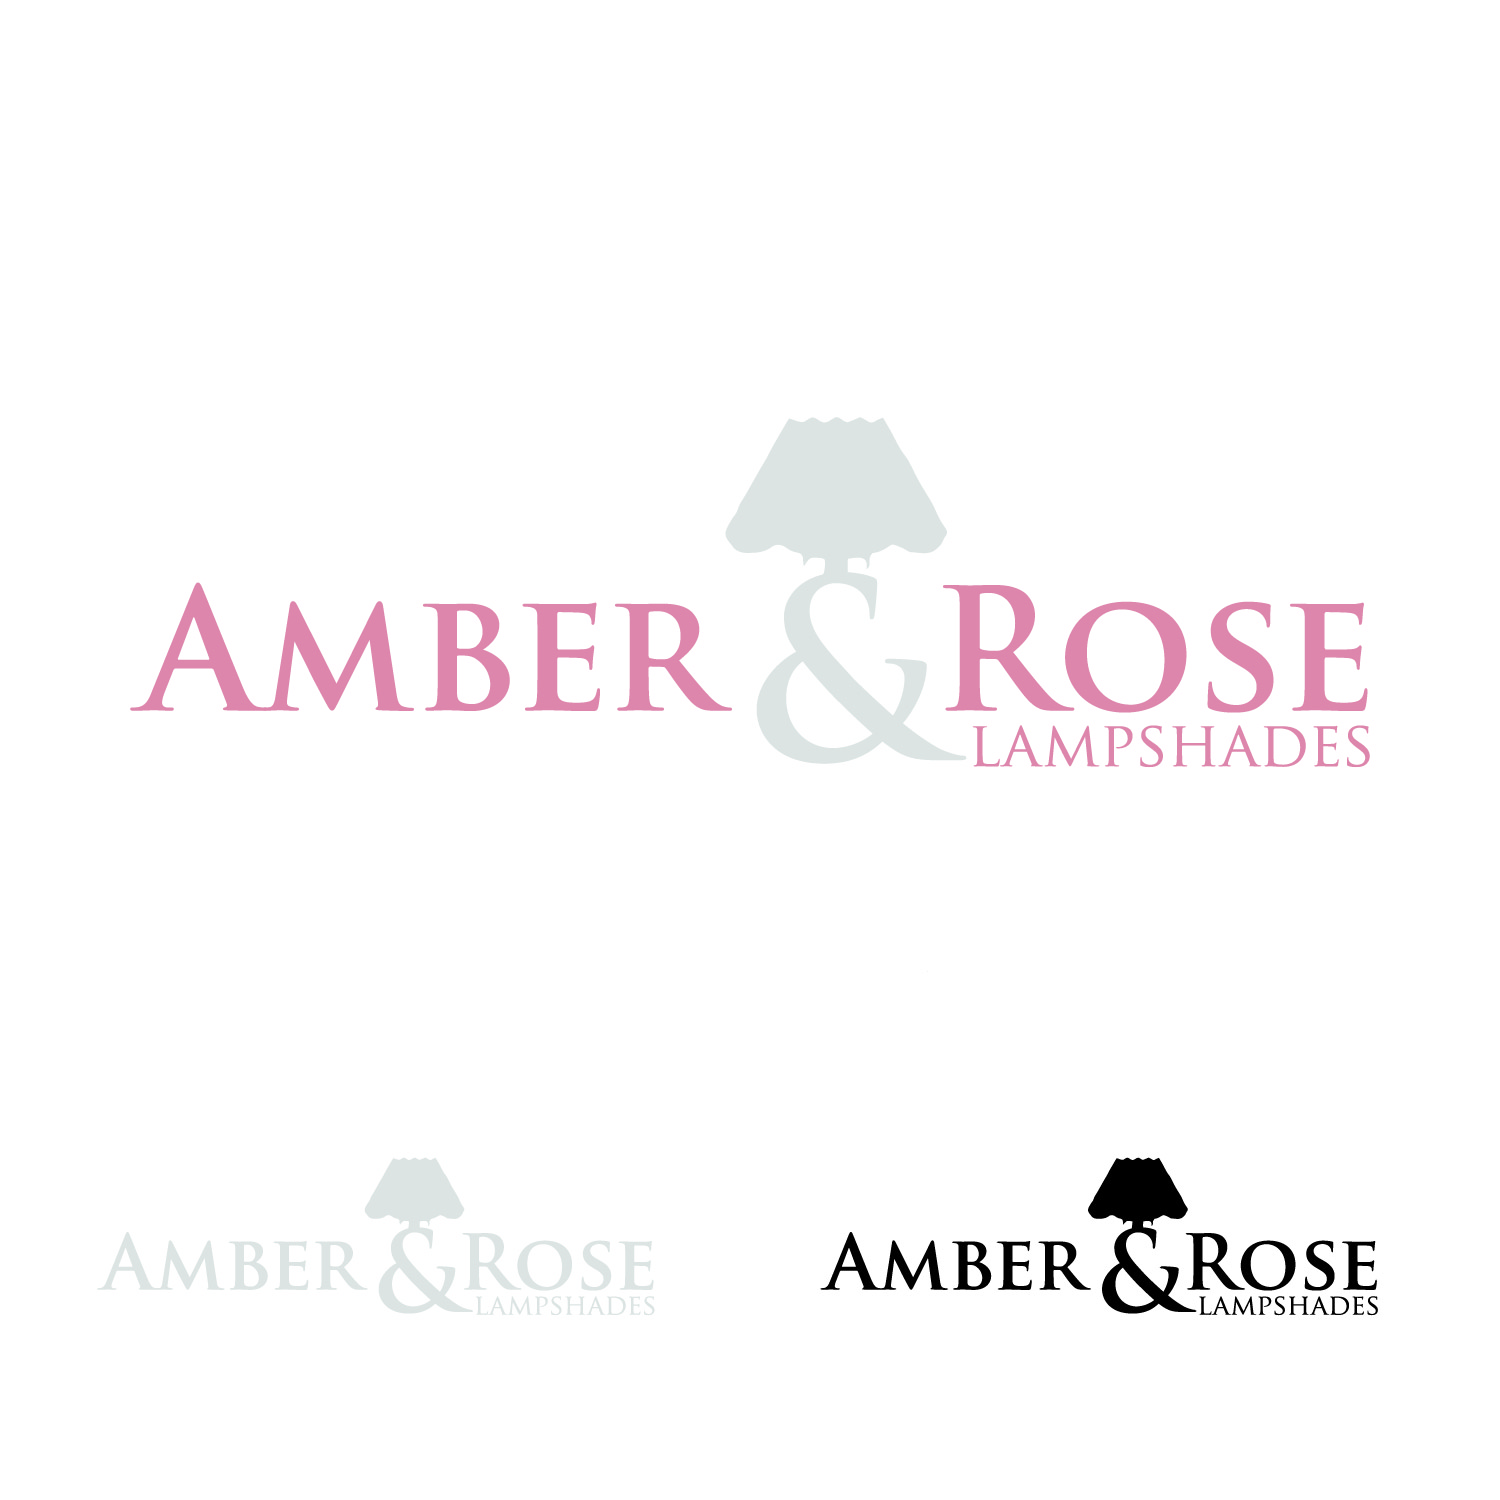 Logo Design by lagalag - Entry No. 6 in the Logo Design Contest Creative Logo Design for Amber & Rose.